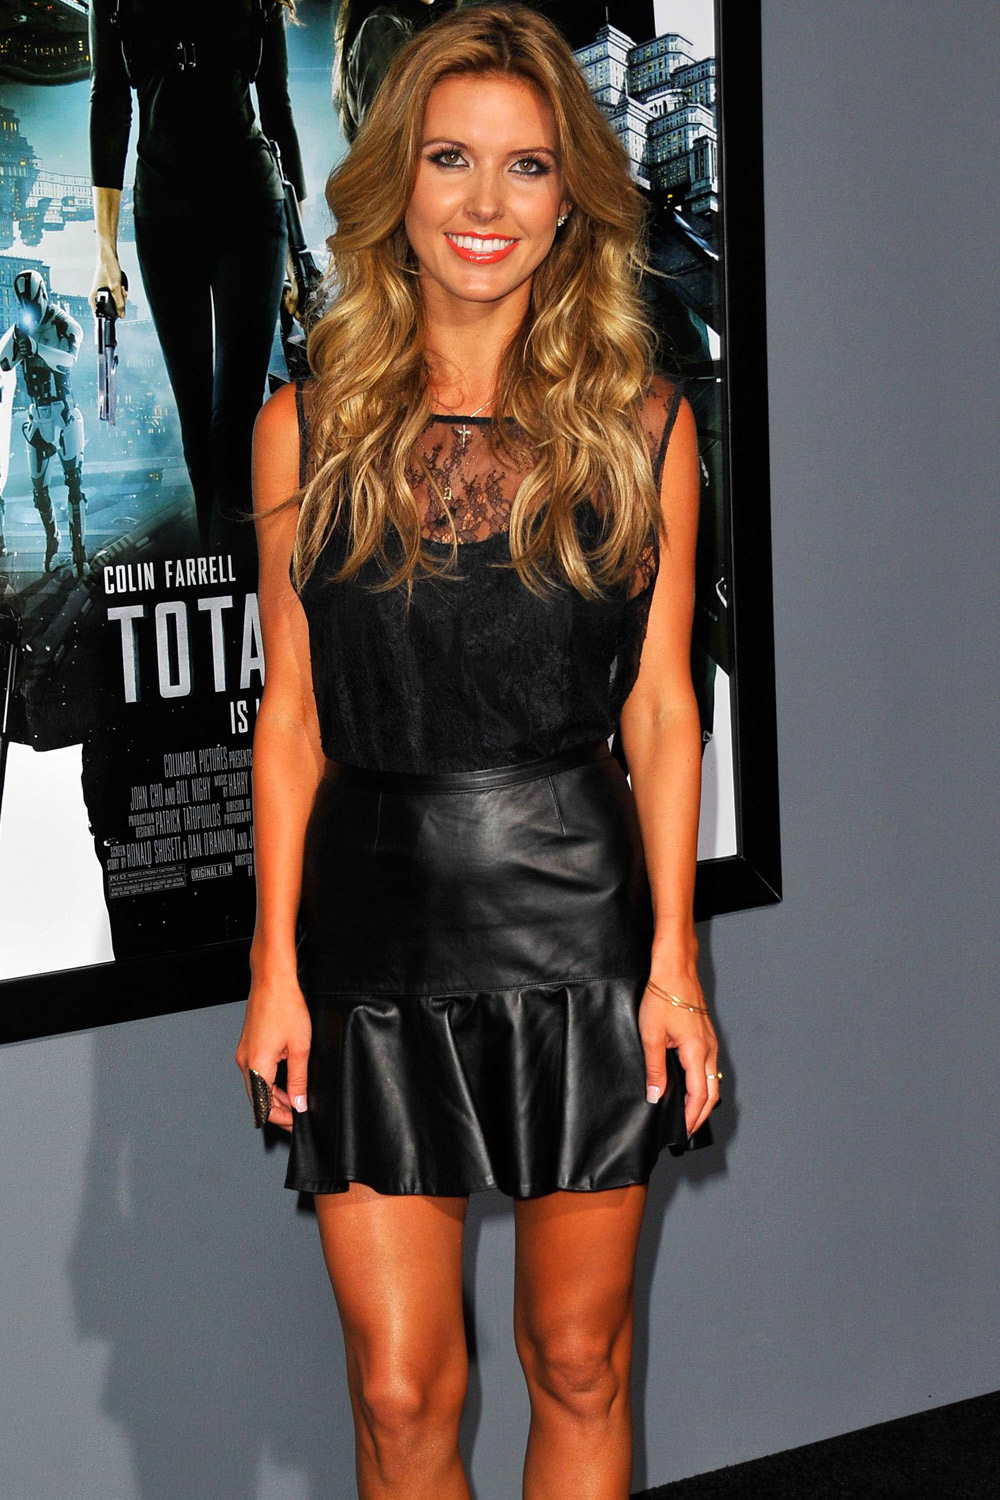 Audrina Patridge at premiere of Total Recall